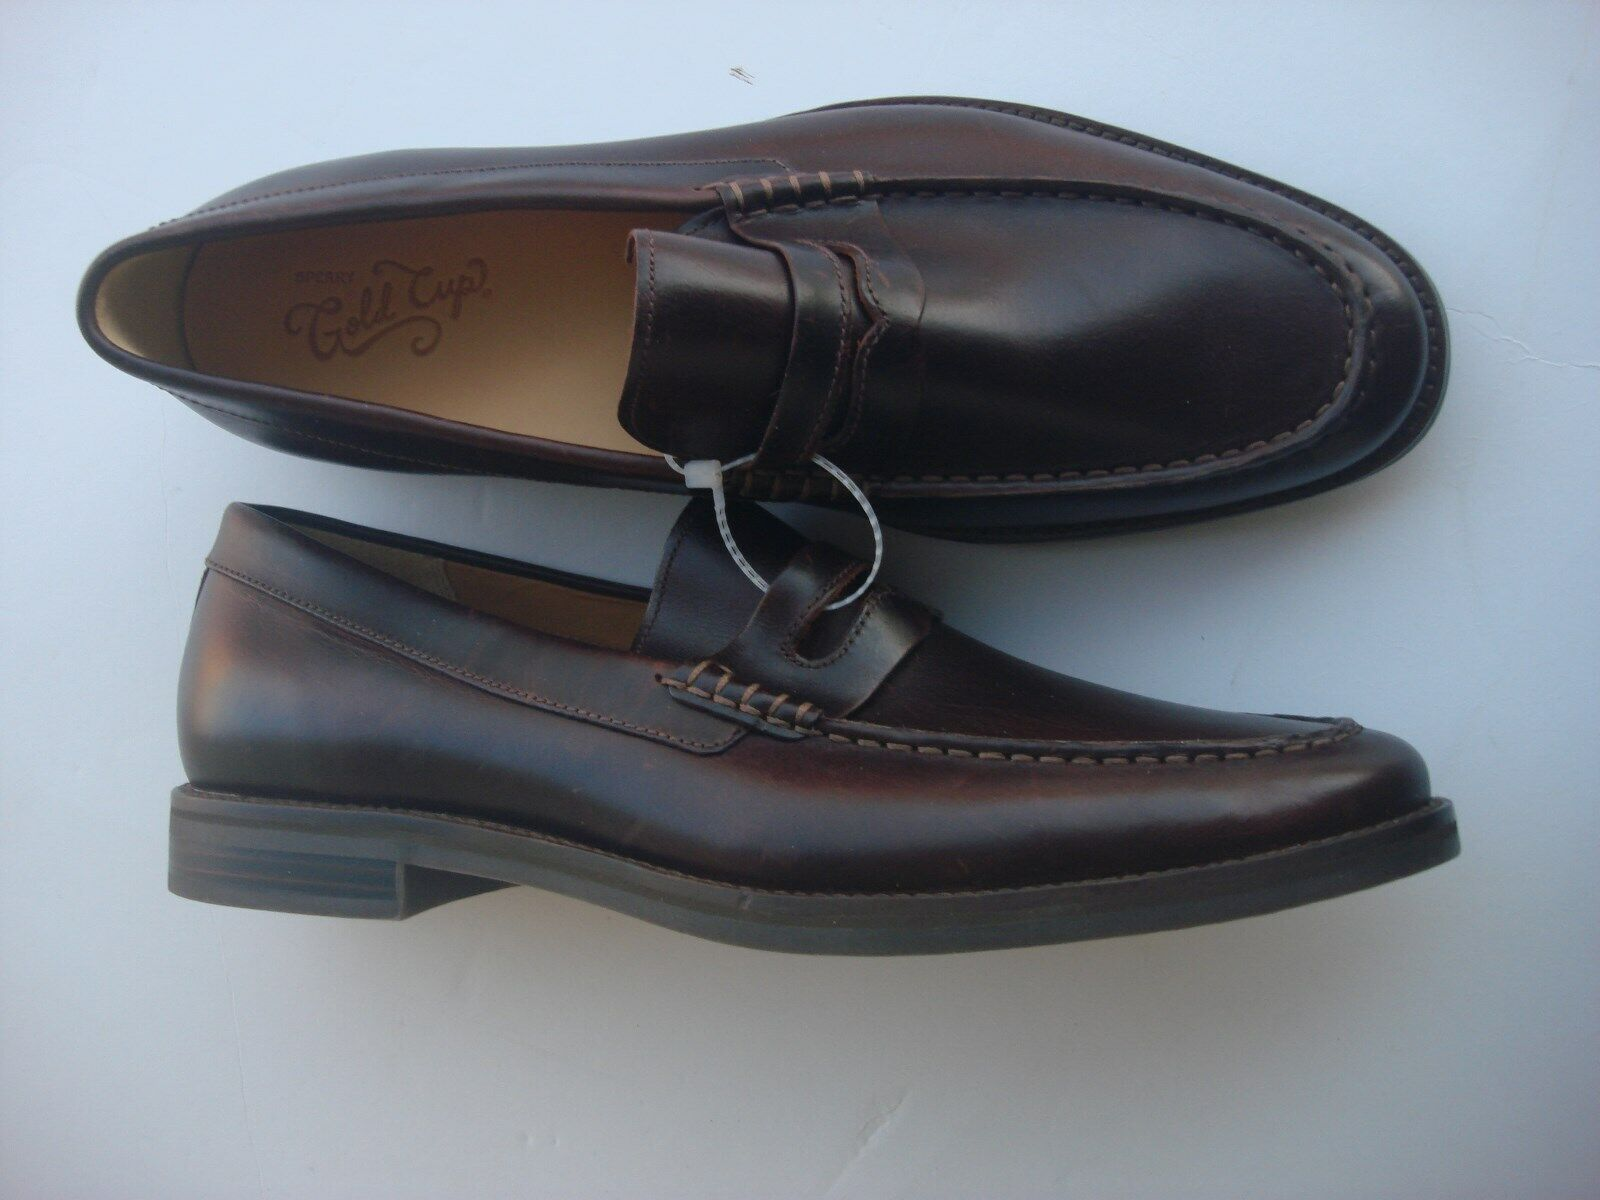 SPERRY® SHOES gold CUP® (STS19033) Size 13 (CASUAL-DRESS-FORMAL) FREE SHIPPING